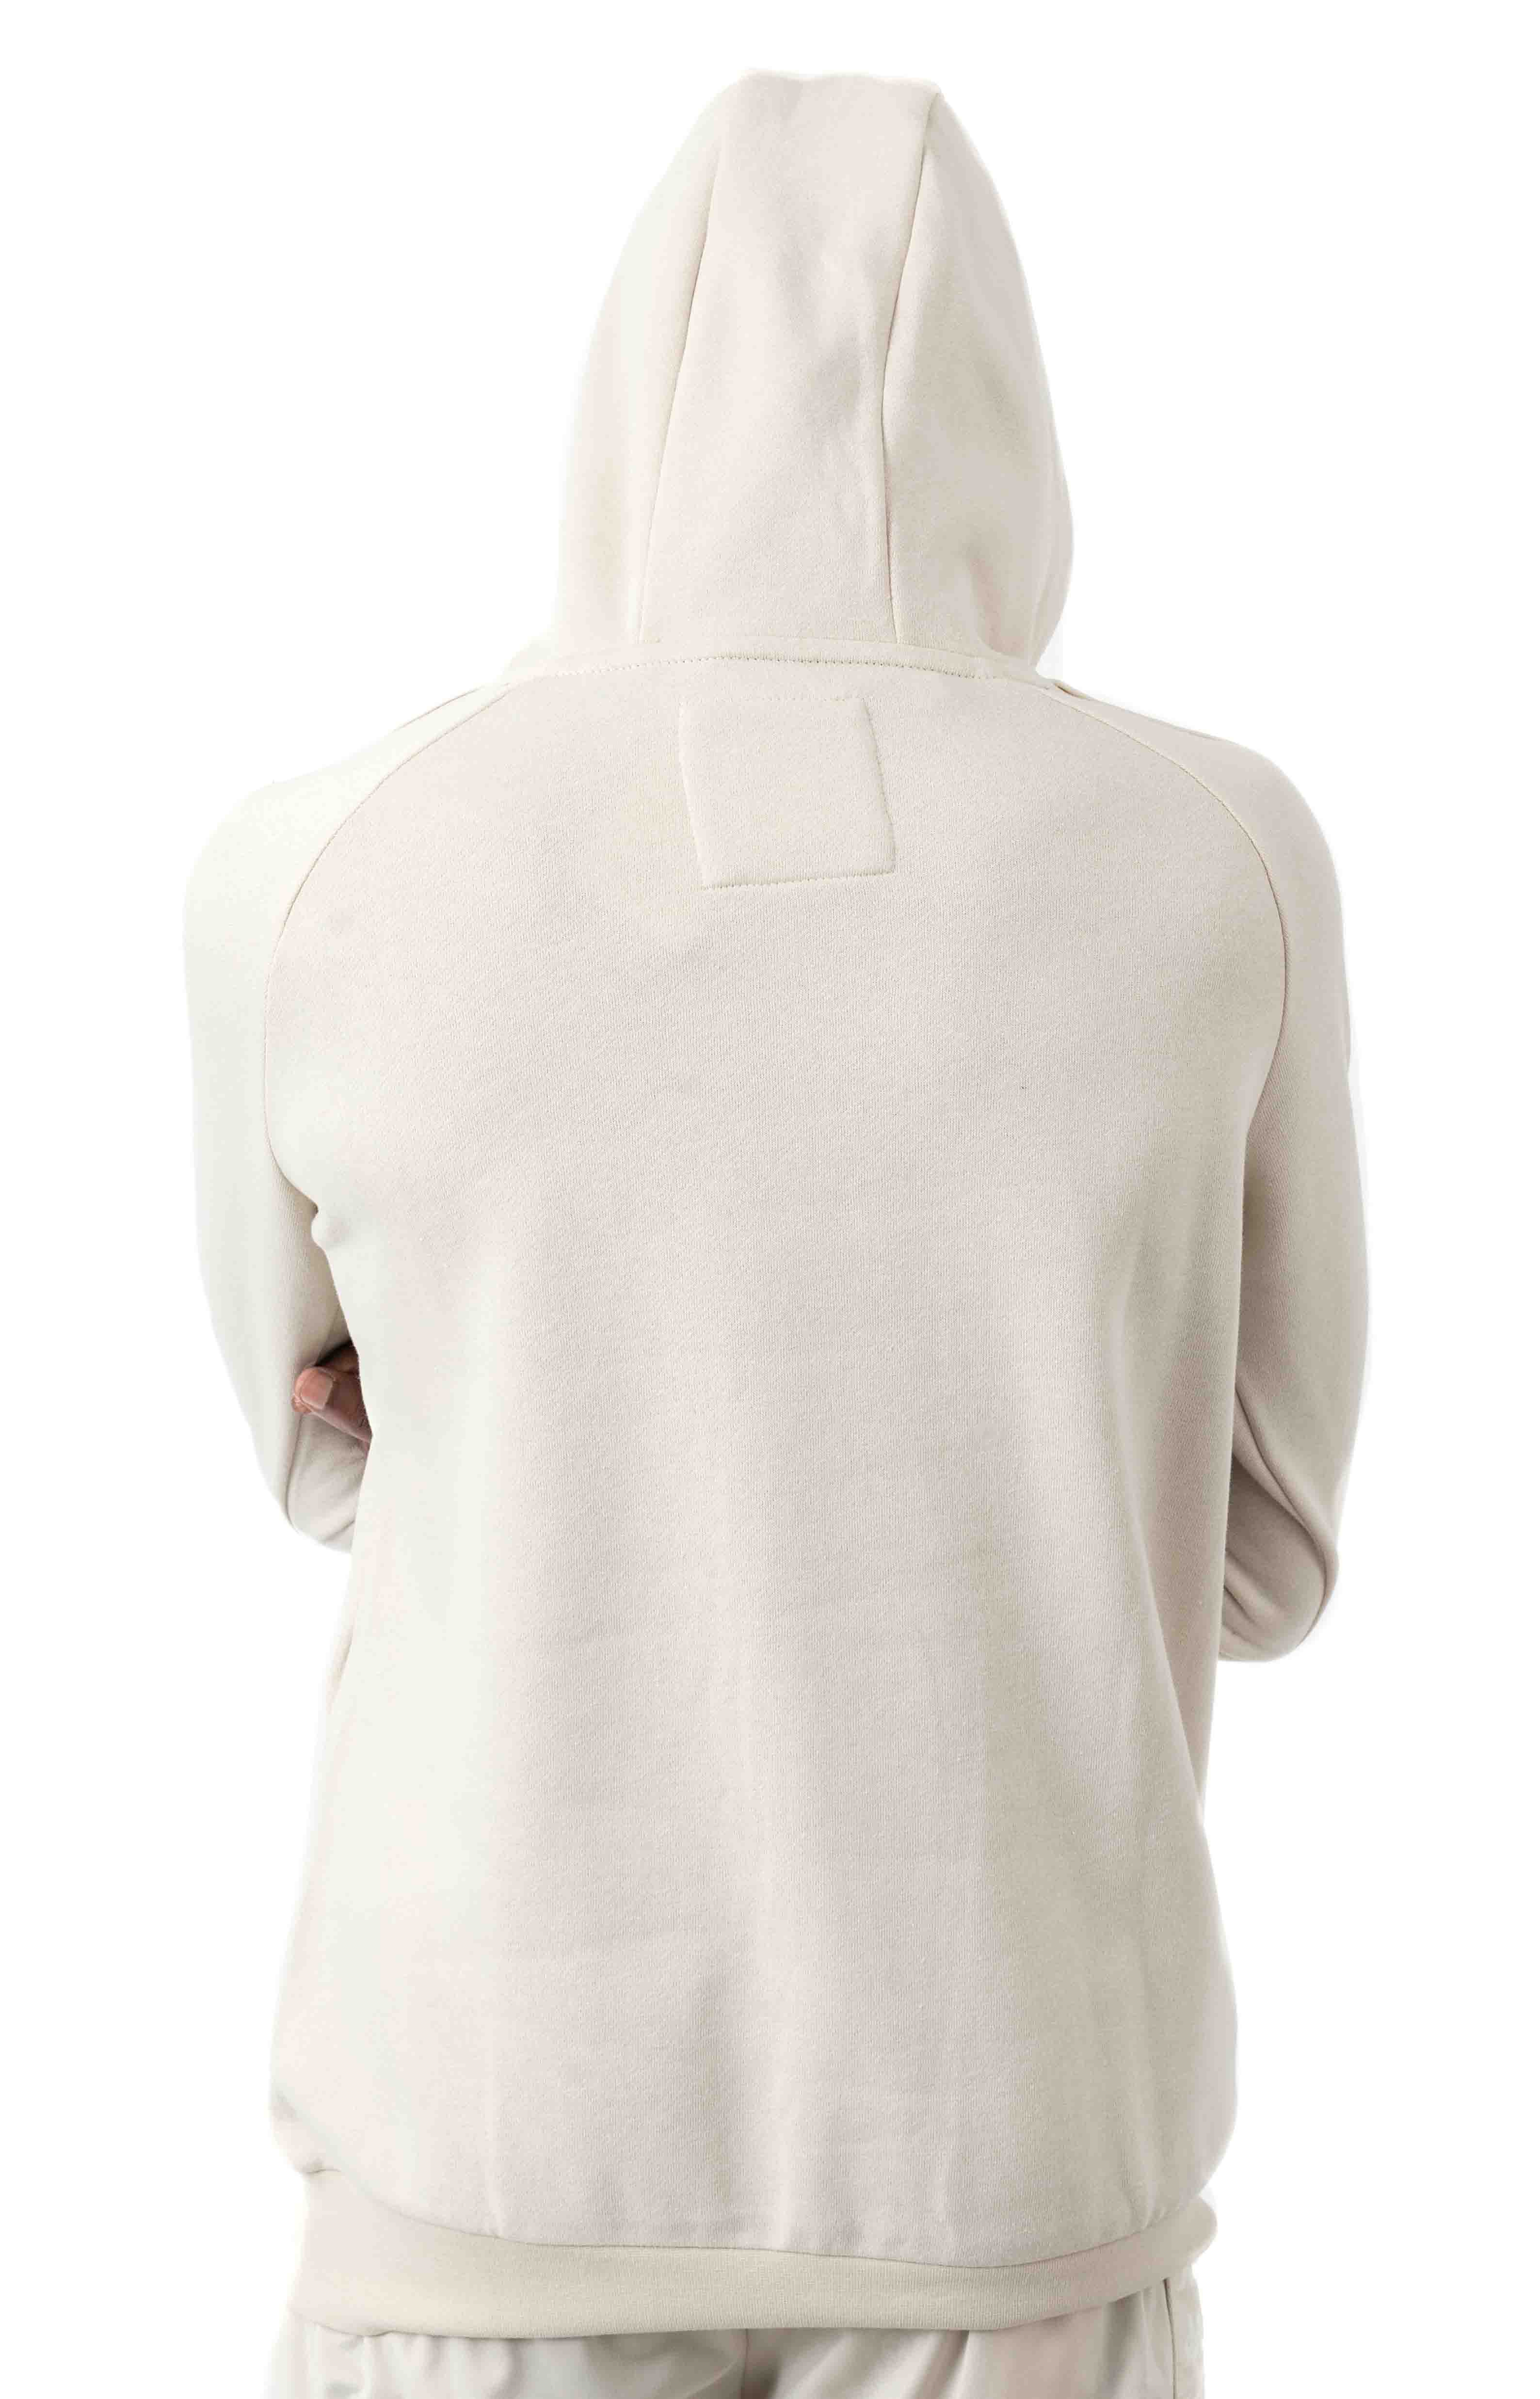 Authentic Hurtado Pullover Hoodie - Beige/White 3